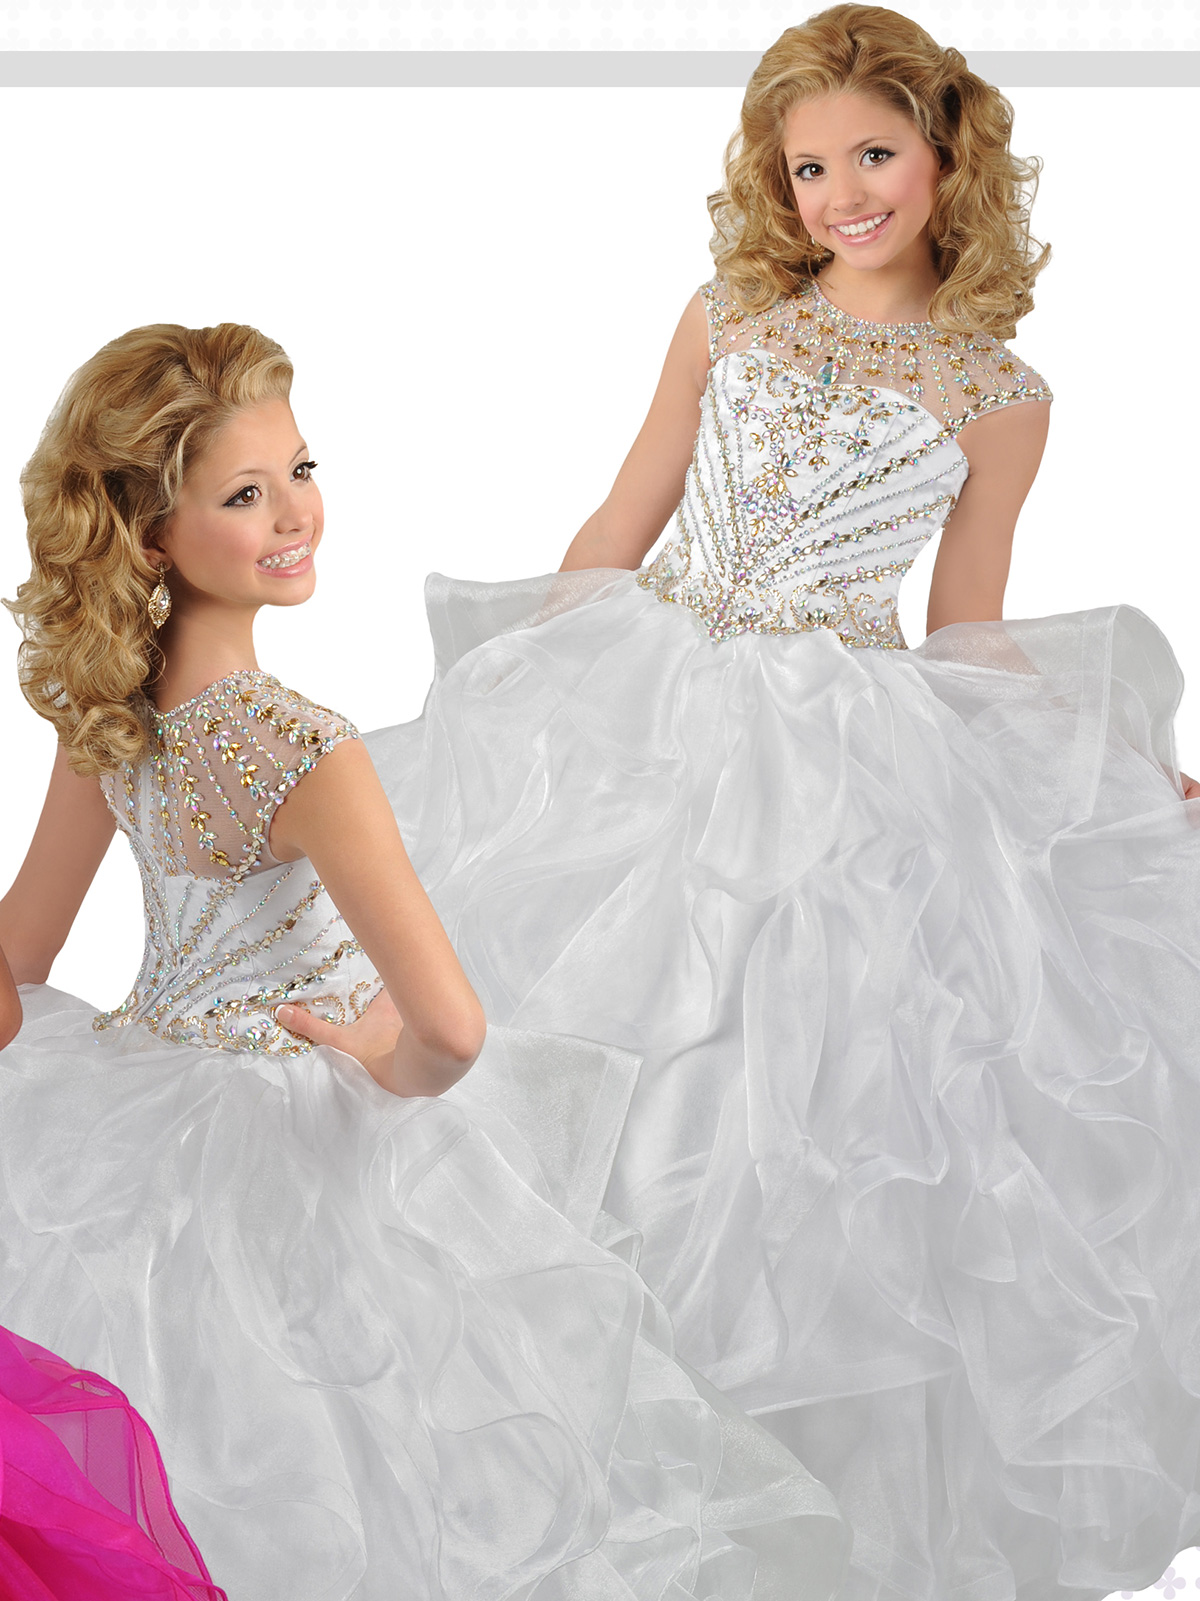 Ritzee Girls Children's Pageant Dresses available at Ready set Grow.